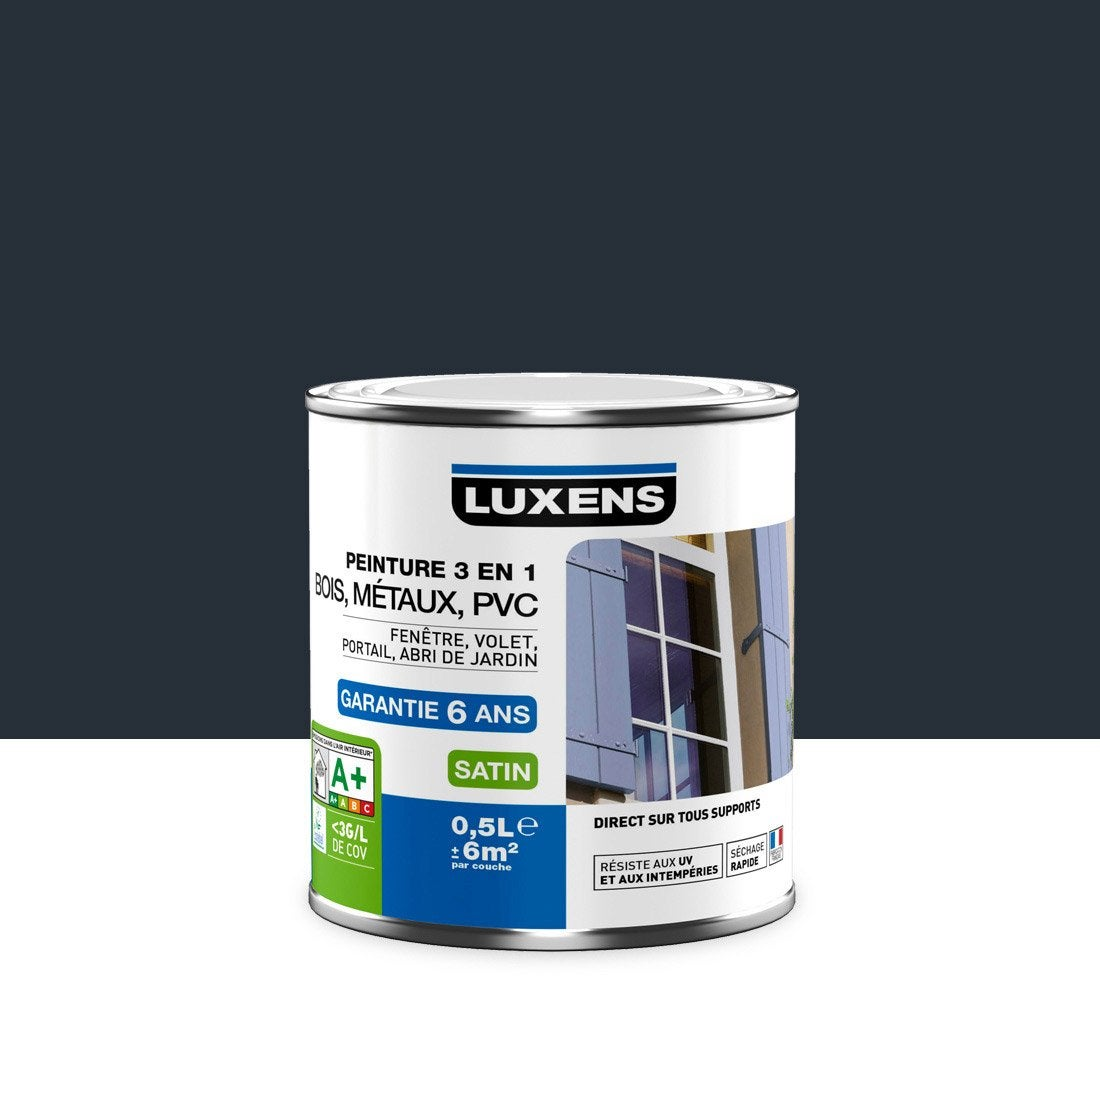 Peinture multimat riau ext rieur 3 en 1 luxens gris anthracite 0 5 l leroy merlin for Peinture coloris